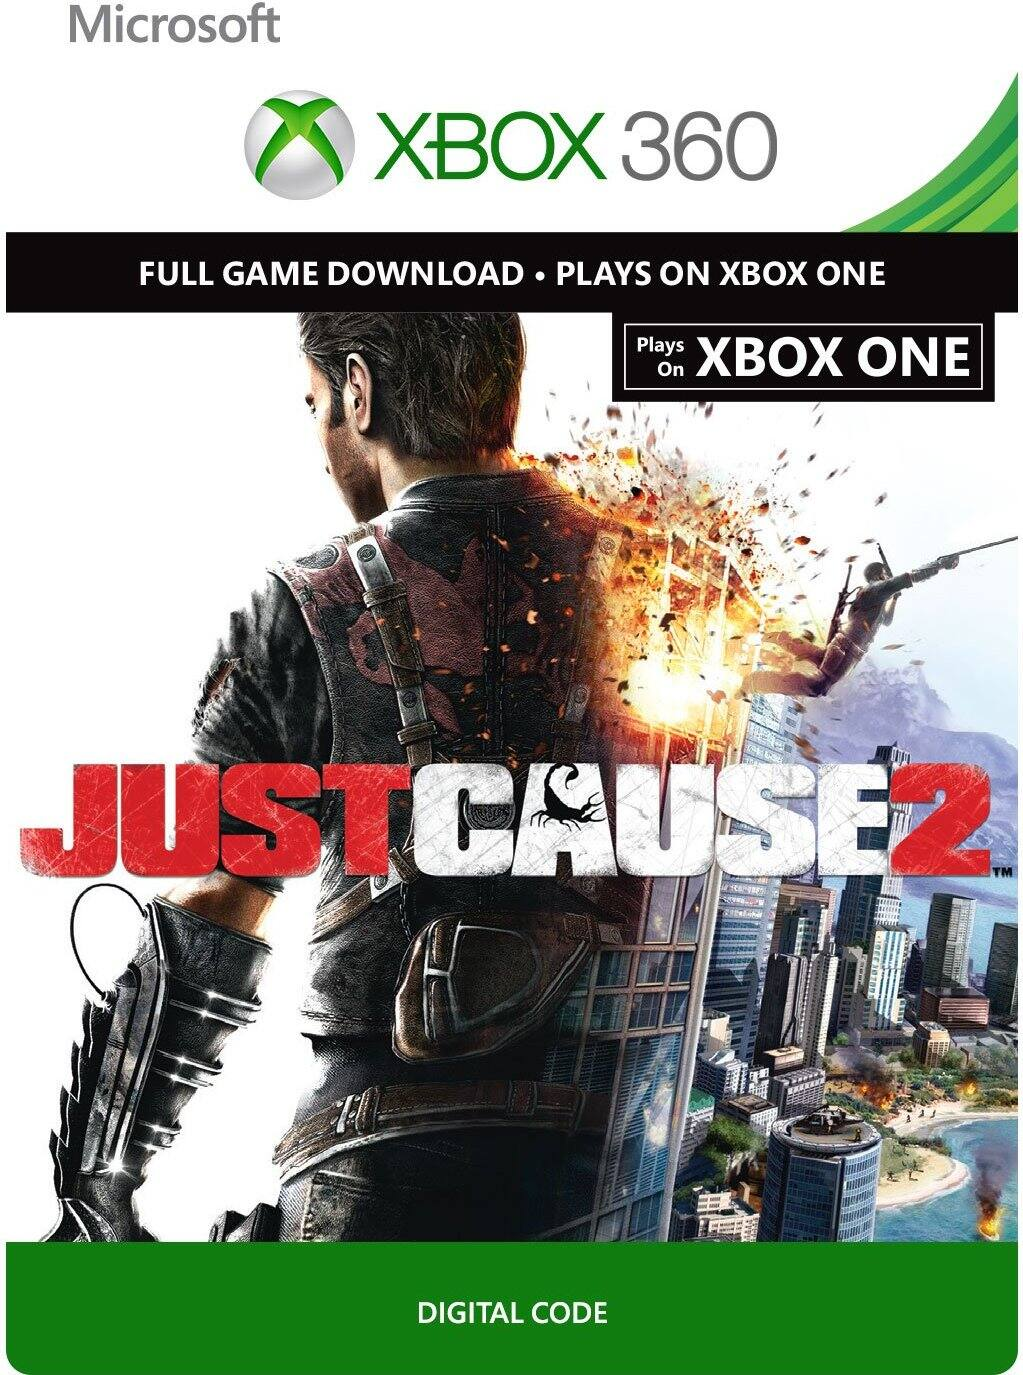 Just Cause 2 (Xbox 360 & Xbox One Digital Code) + More XBOX Games On Sale From $4.99 @ Amazon